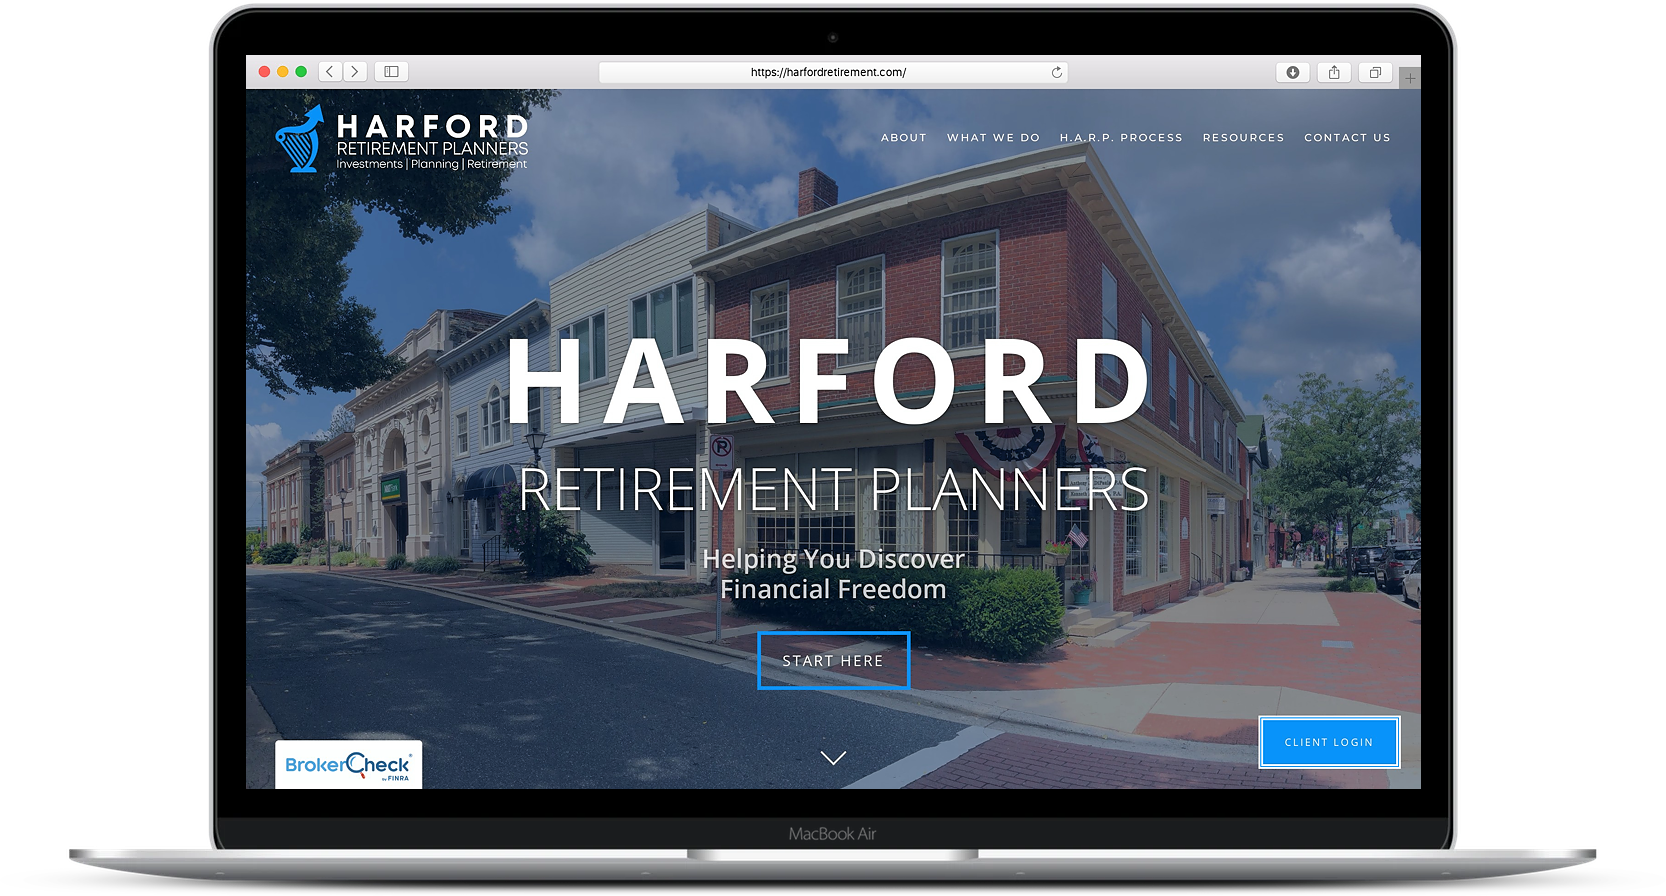 Harford Retirement Planners